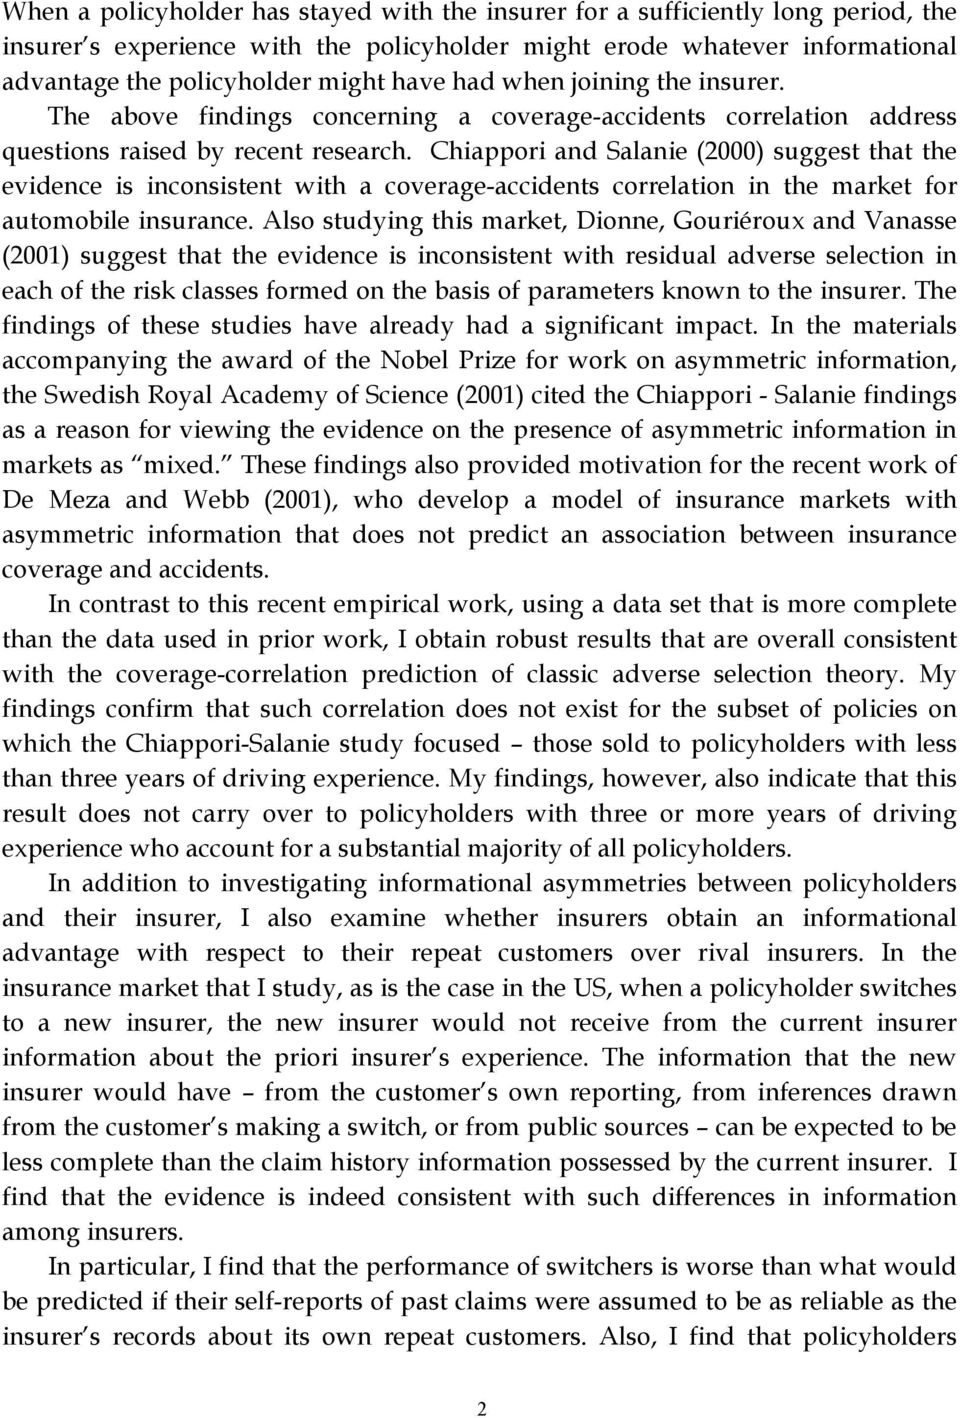 Chappor and Salane (2000) suggest that the evdence s nconsstent wth a coverage-accdents correlaton n the market for automoble nsurance.